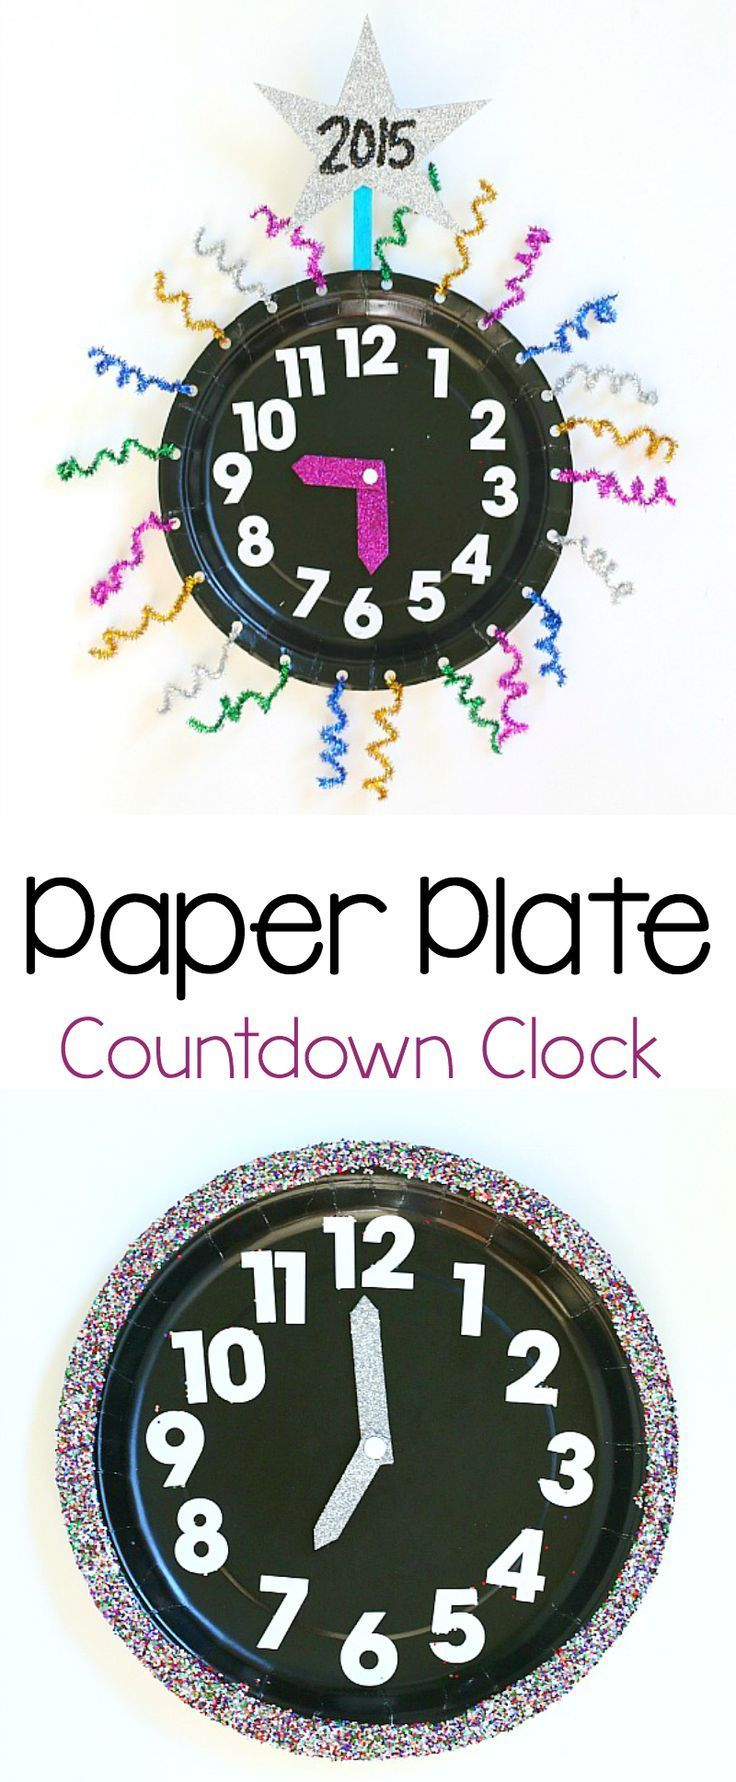 Paper Plate Countdown Clock: Count down the hours until the new year with this festive clock craft for kids! (Fun math activity for New Year's Eve!) ~ http://BuggyandBuddy.com